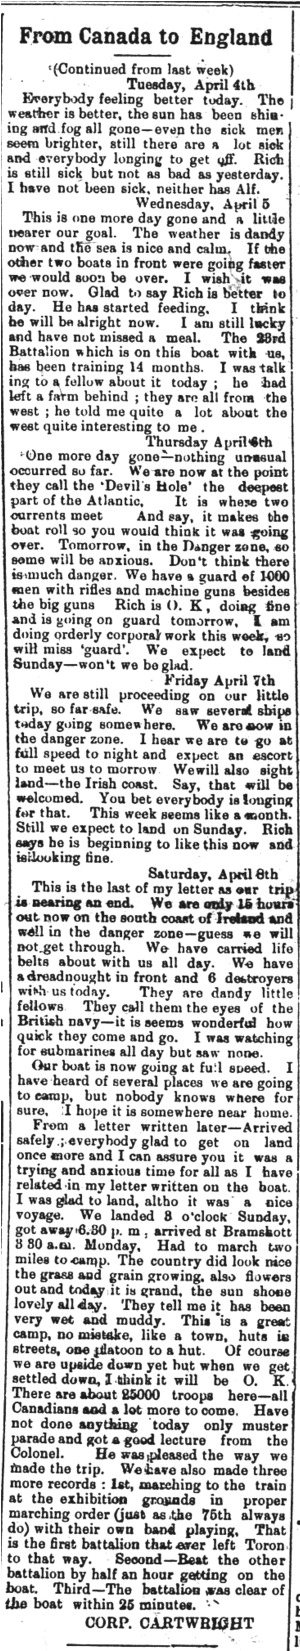 from-canada-4-may-1916